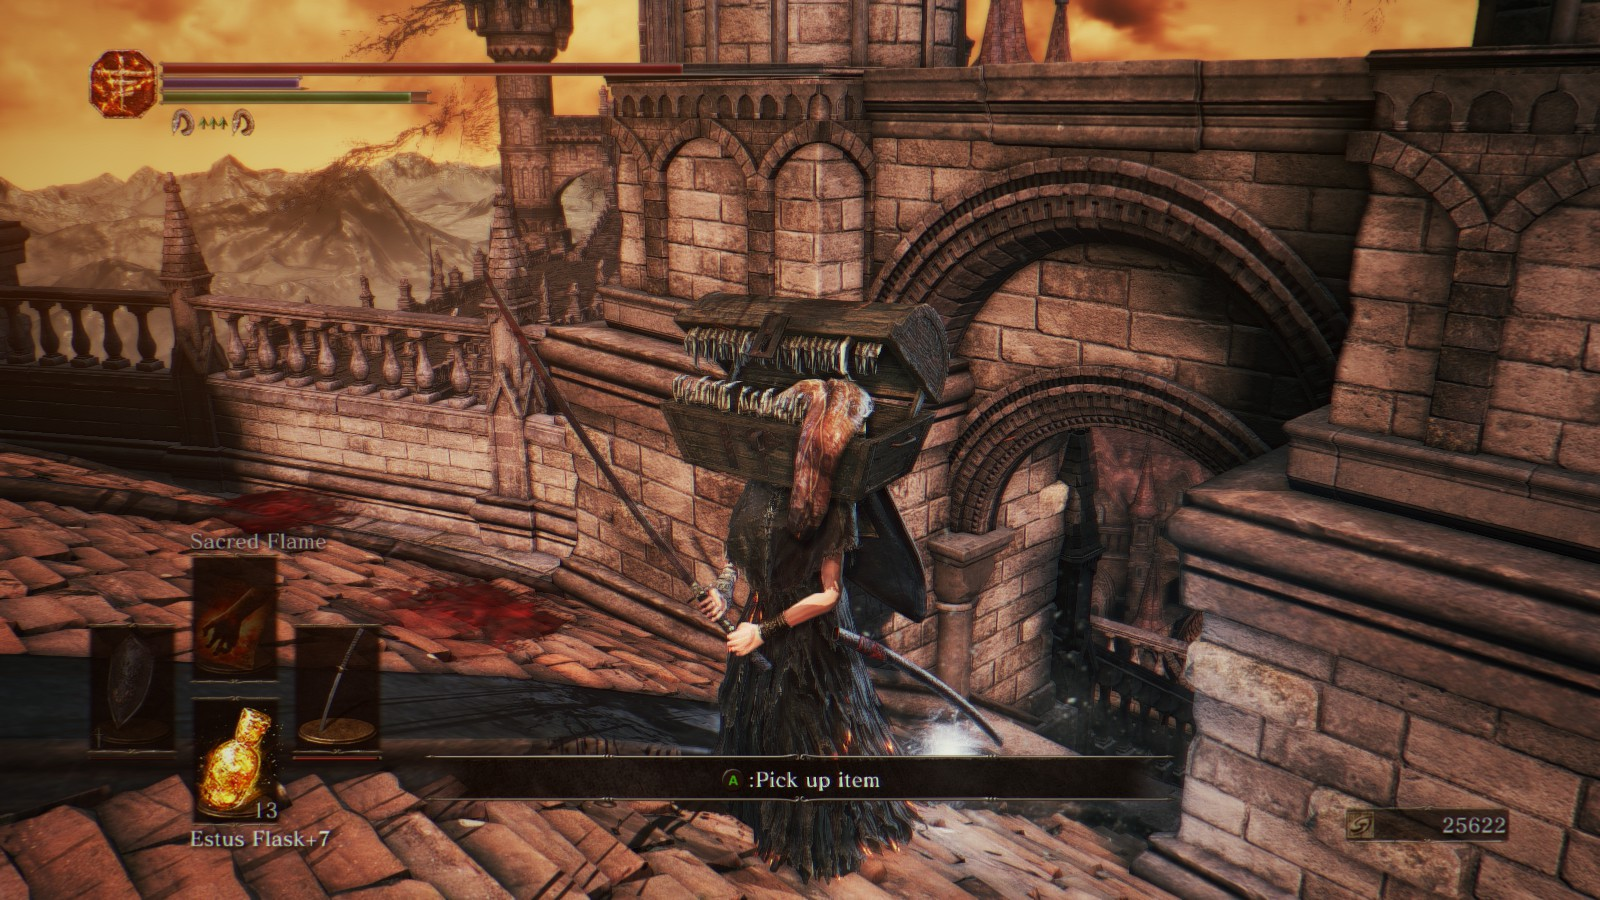 Steam community guide late game ultimate souls farming 92664 and second enemy approach immediately biocorpaavc Gallery